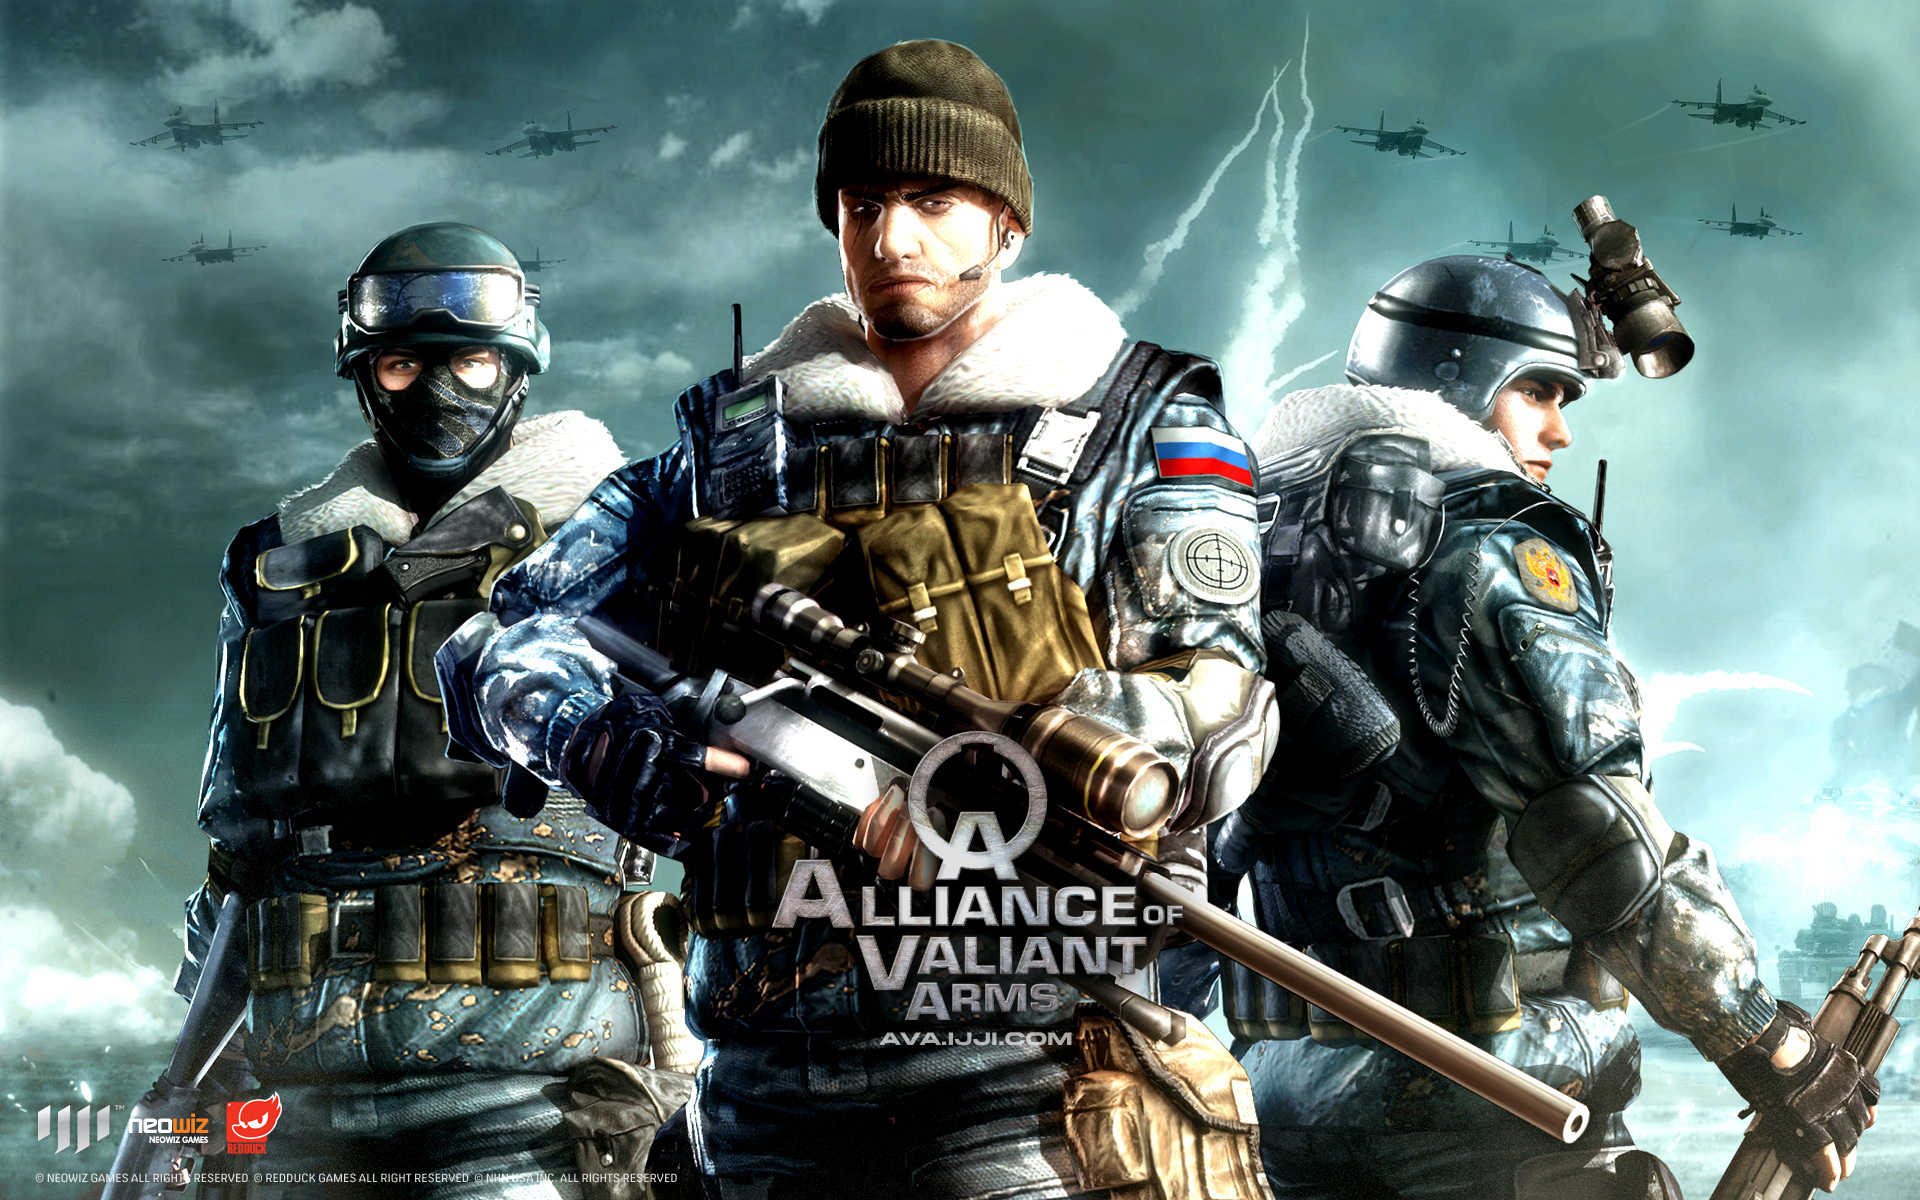 Wallpaper 2 Wallpaper from AVA Alliance of Valiant Arms 1920x1200